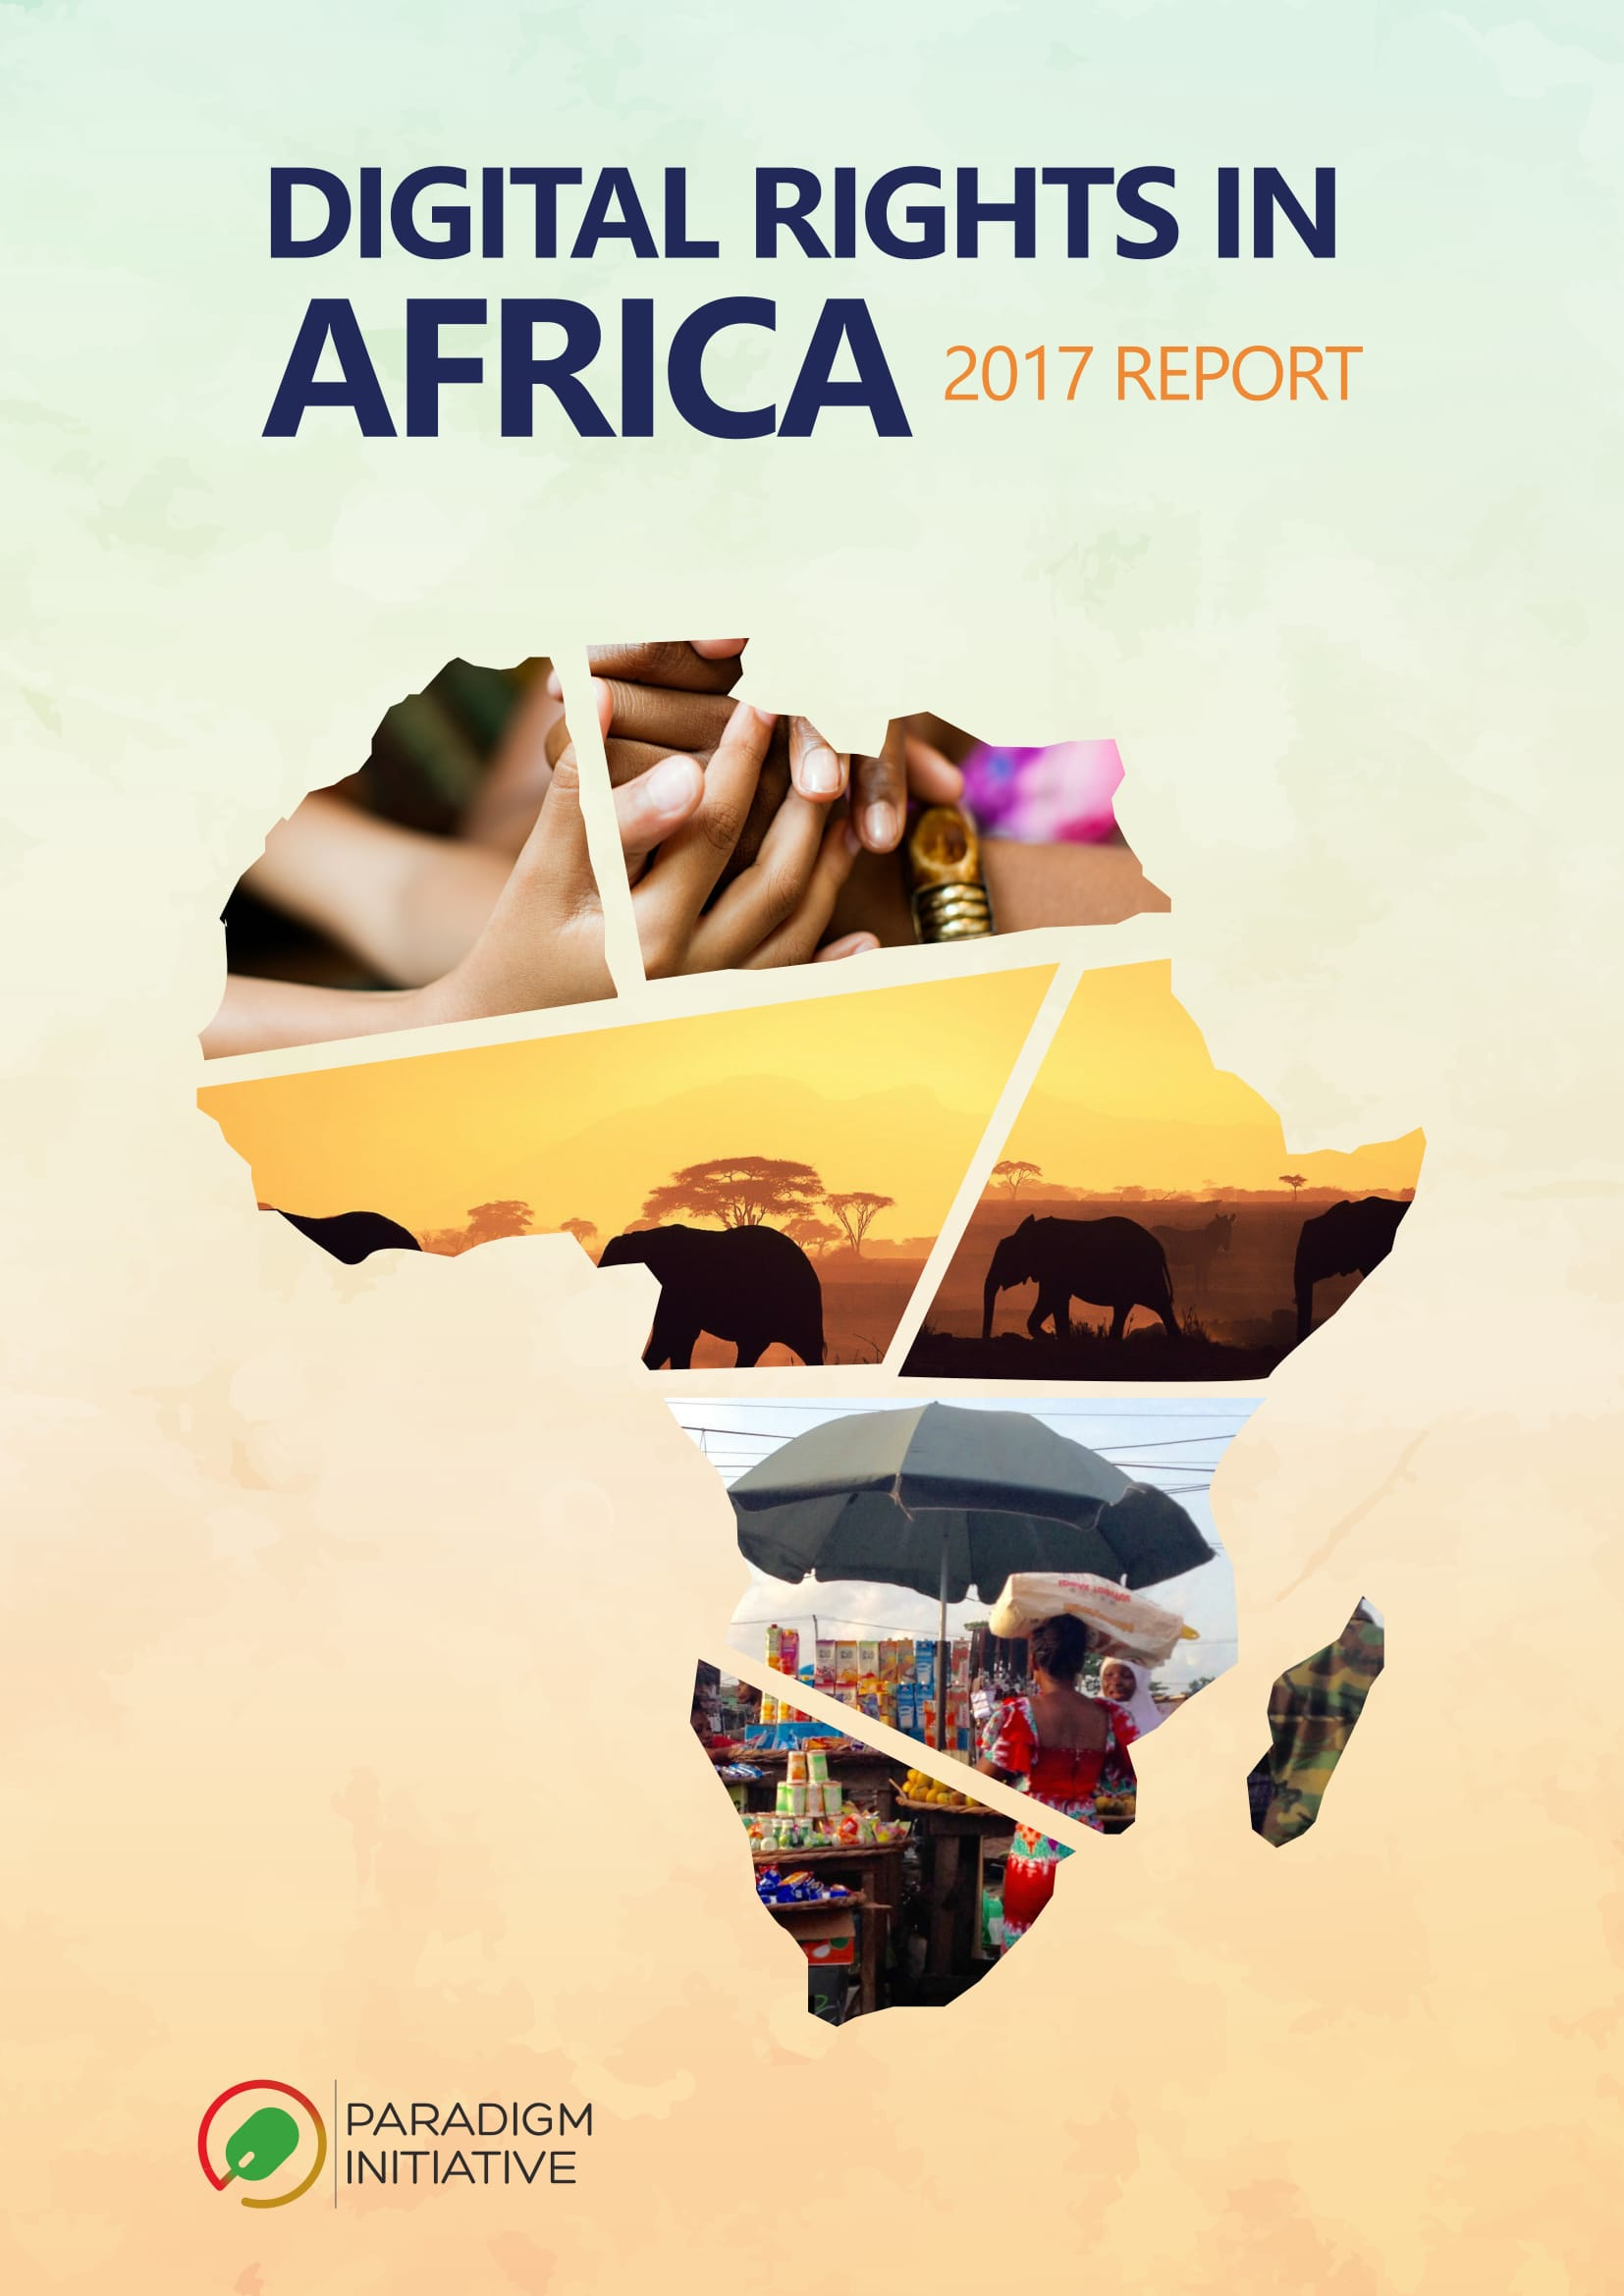 Paradigm Initiative Releases 2017 Digital Rights in Africa Report